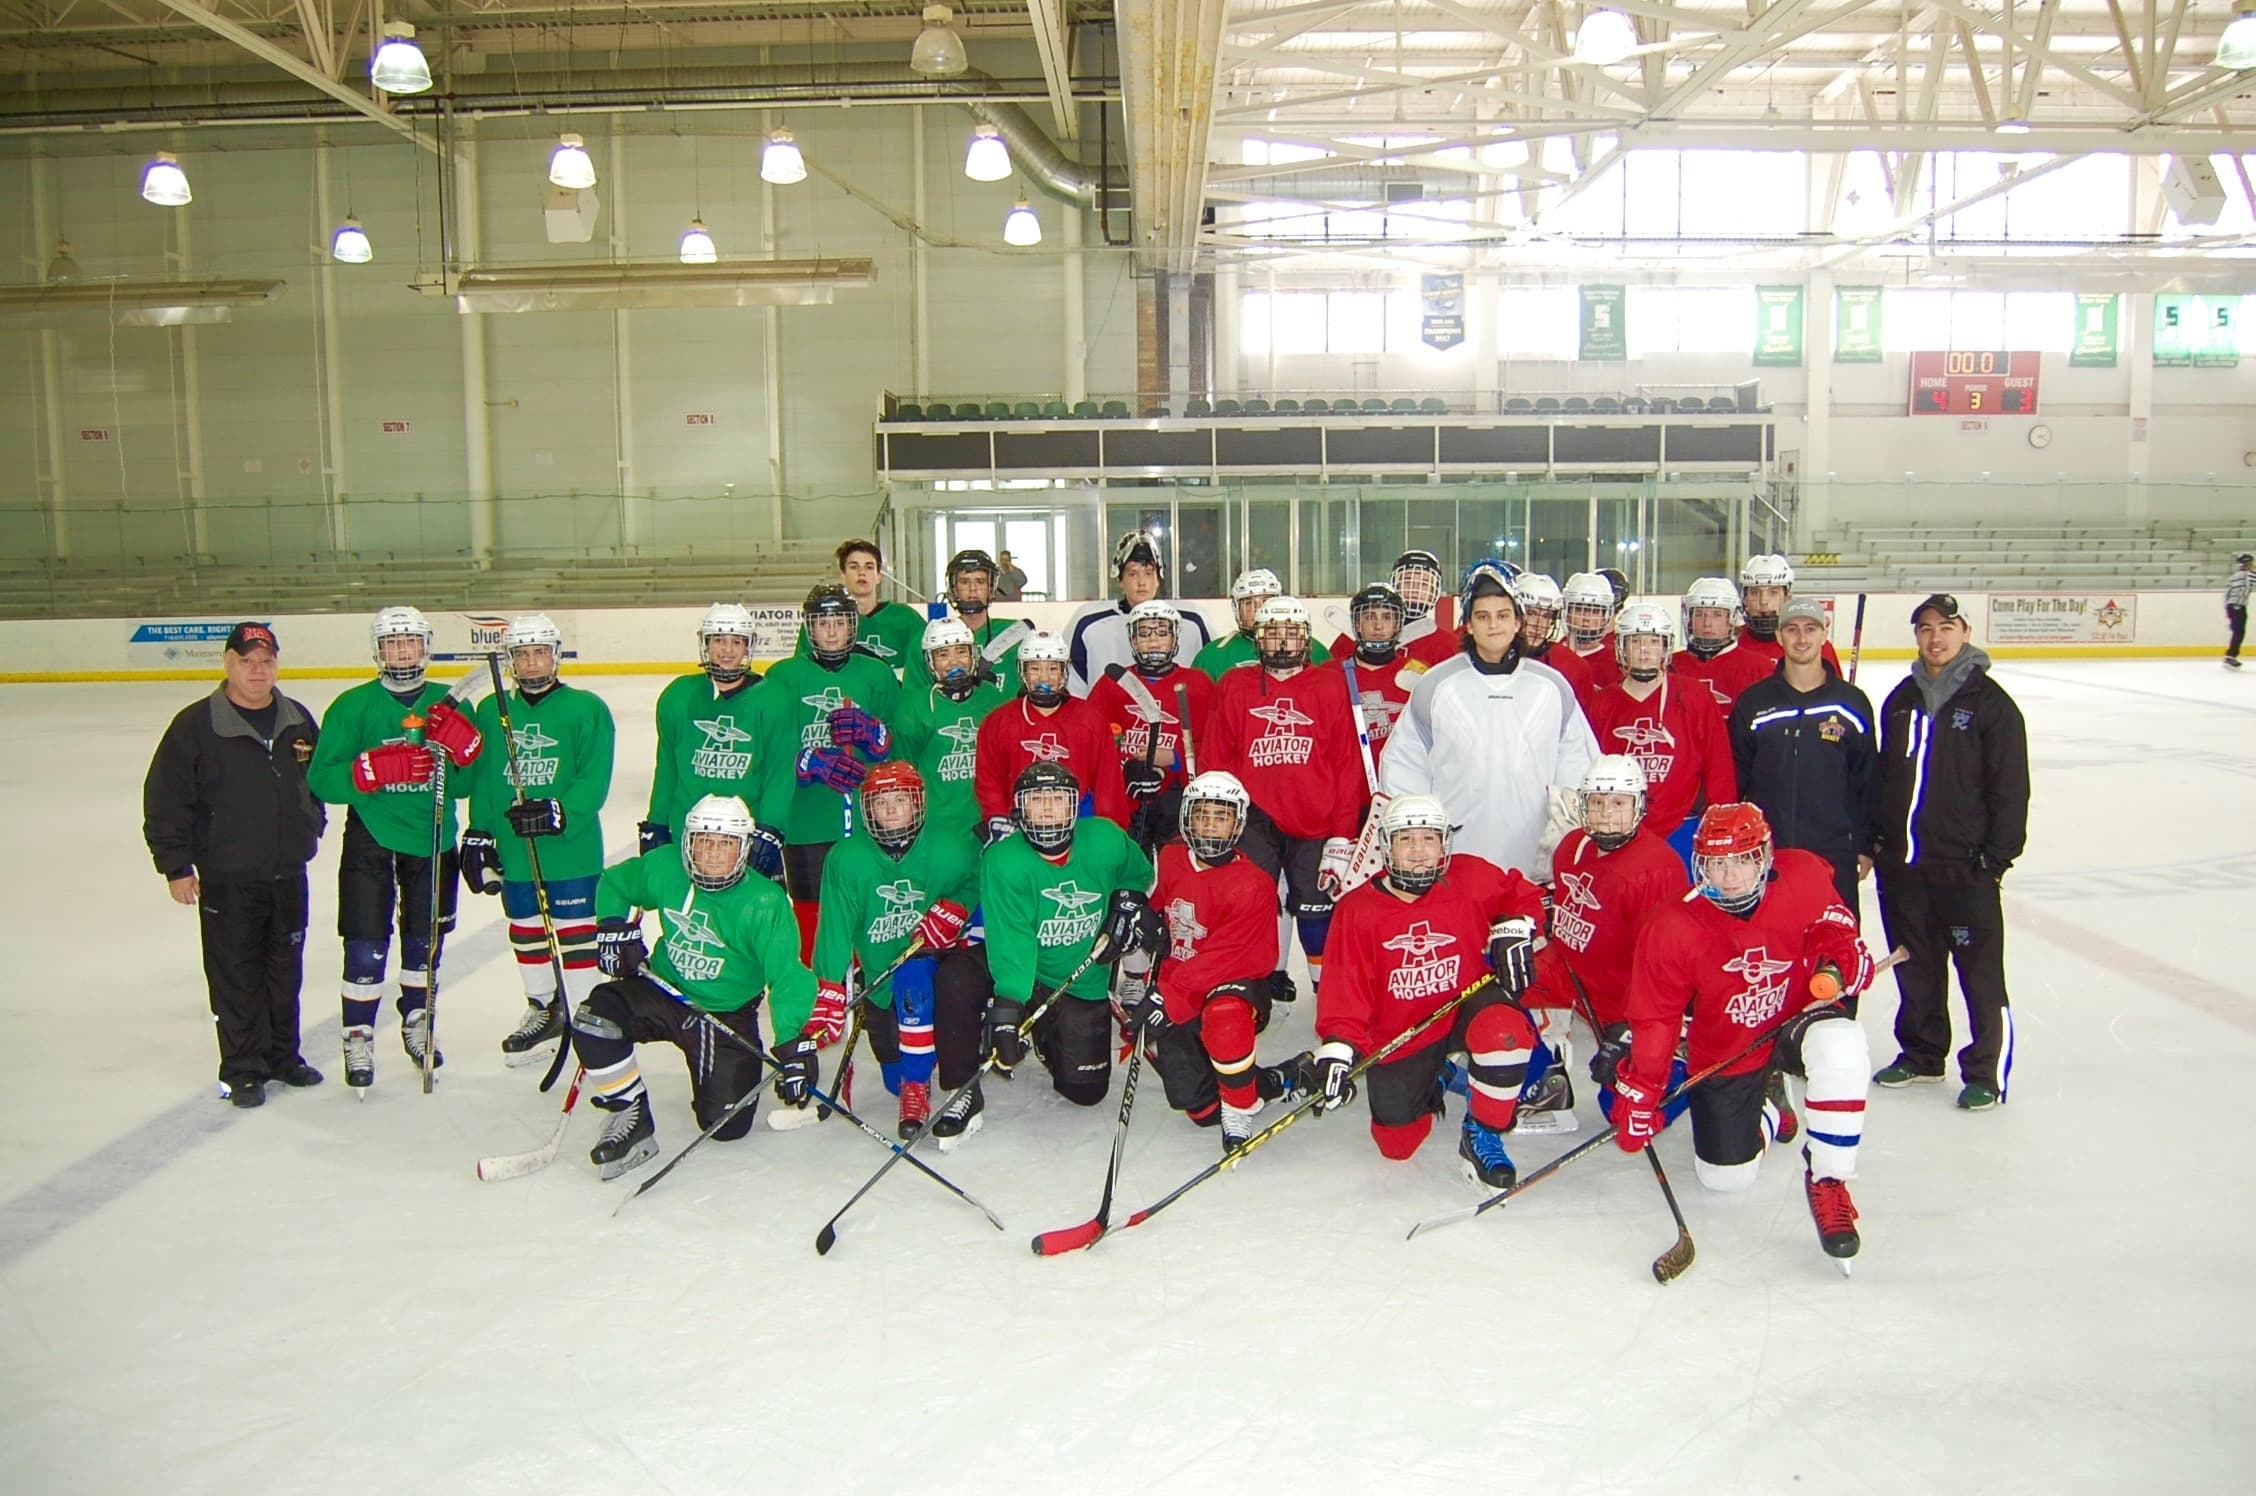 hockey canadas learn all about hockey color and activity